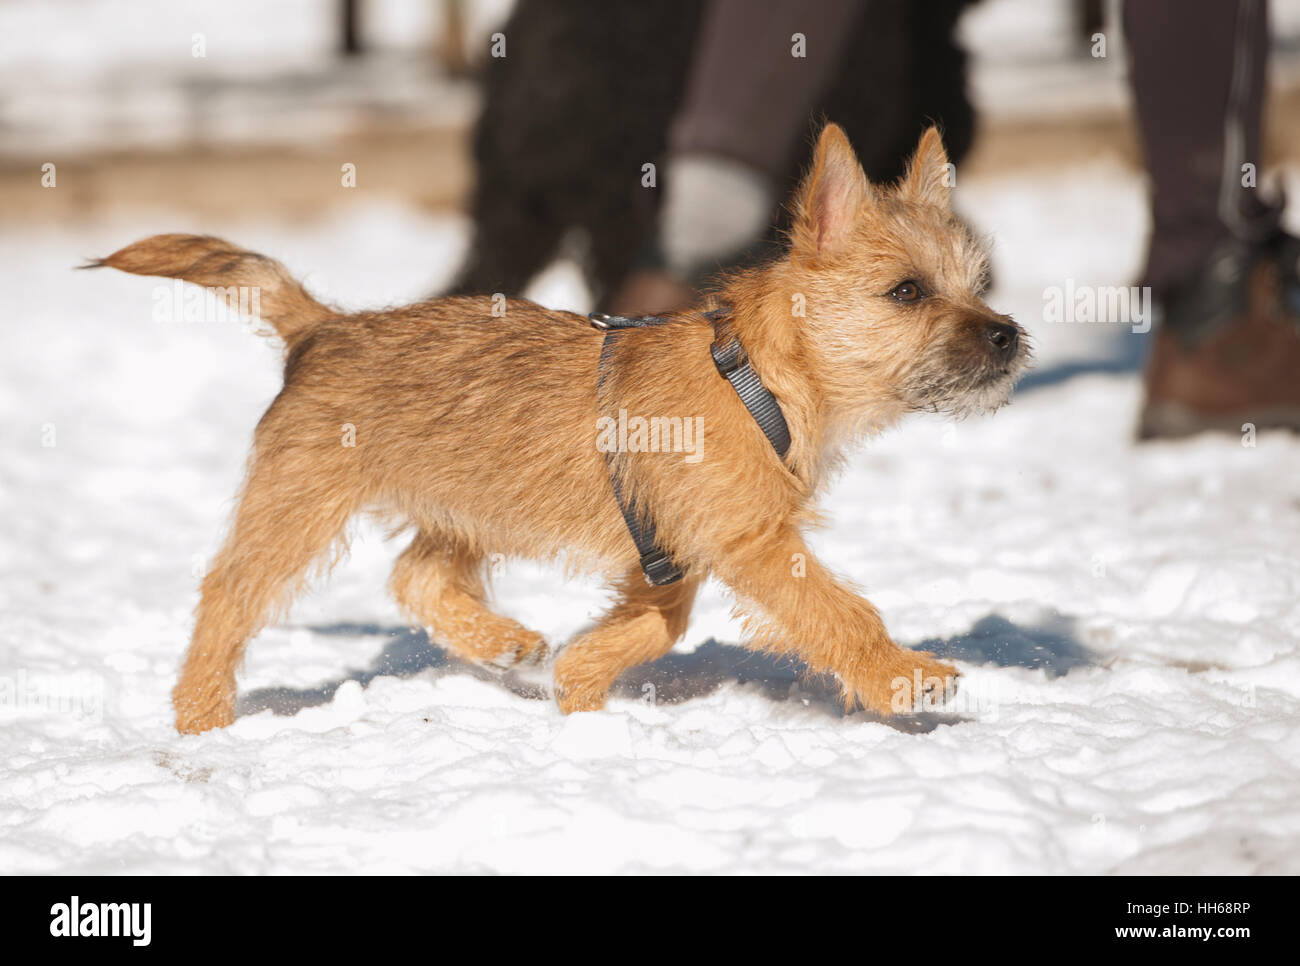 Good Cairn Terrier Ball Adorable Dog - cute-cairn-terrier-puppy-playing-outside-in-cold-winter-snow-young-HH68RP  Image_104270  .jpg